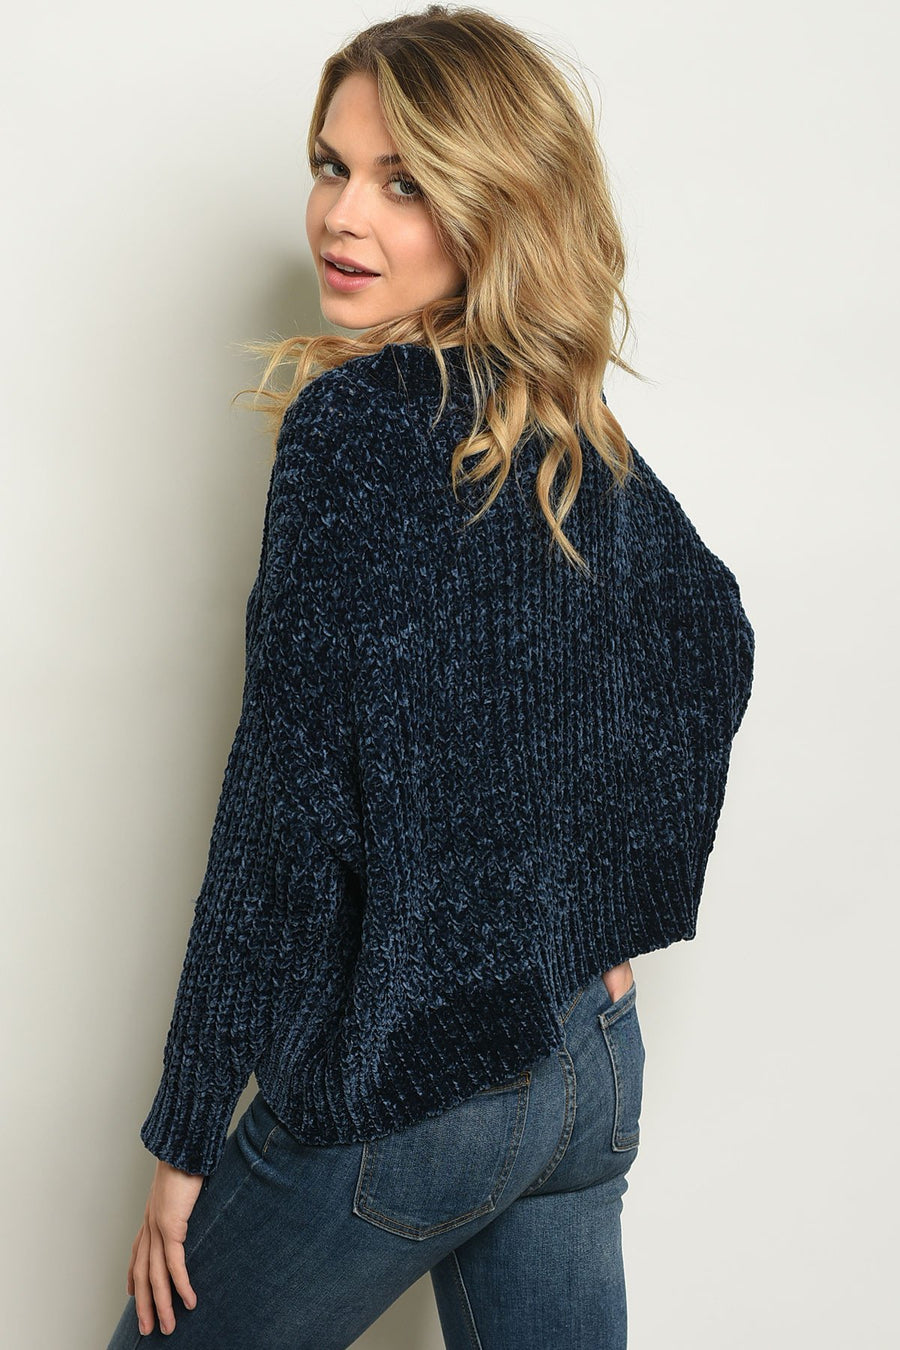 Navy Sweater Women - Apparel - Sweaters Cardigans and Tops Tigerlily and Me